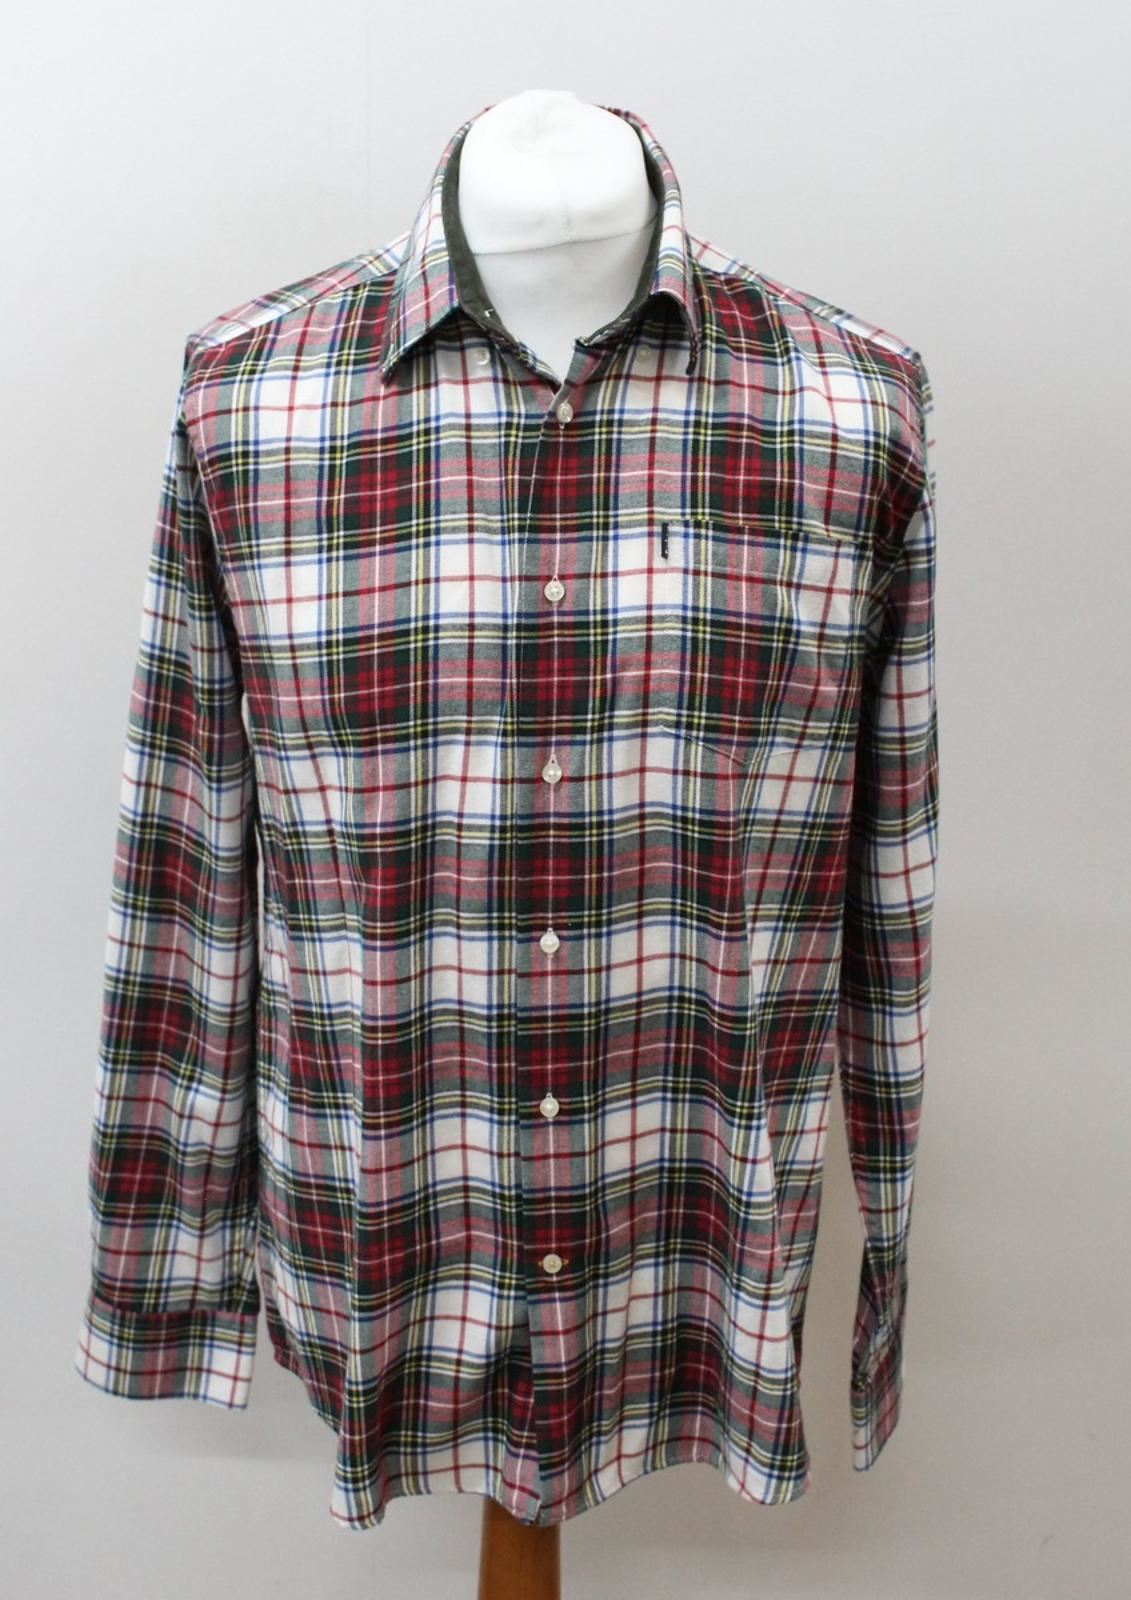 BARBOUR-Men-039-s-Ivory-Cotton-Long-Sleeve-Collared-Checked-Casual-Shirt-Size-L